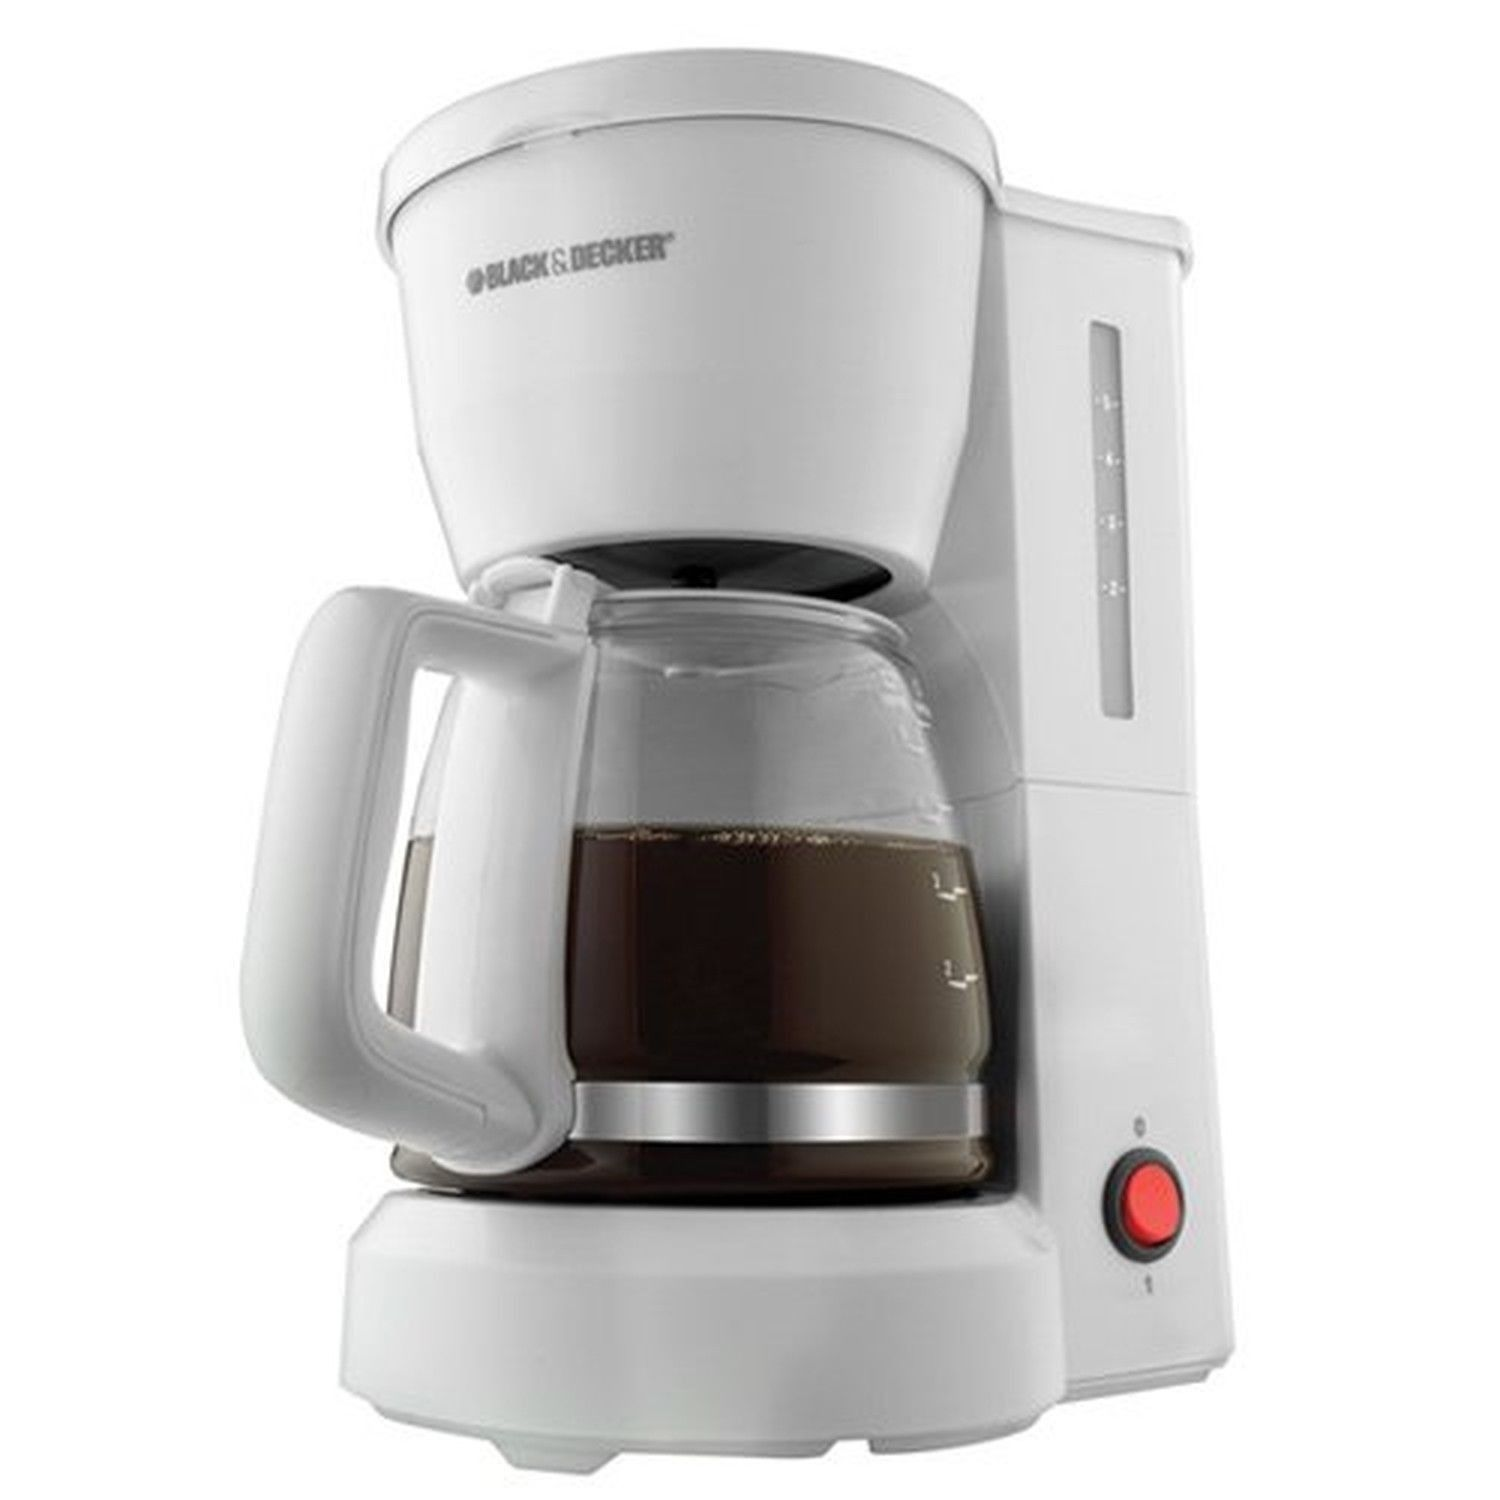 Black u decker dcmw cup drip coffeemaker with glass carafe